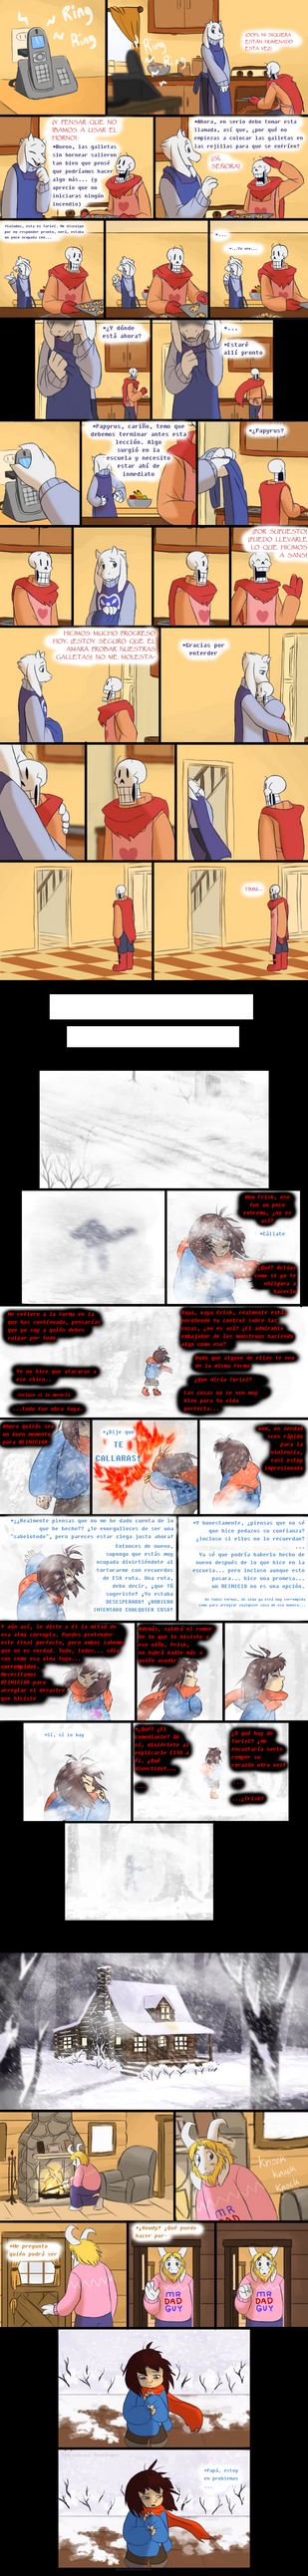 Endertale Pag 24 - by TC-96 by AlexsDragon